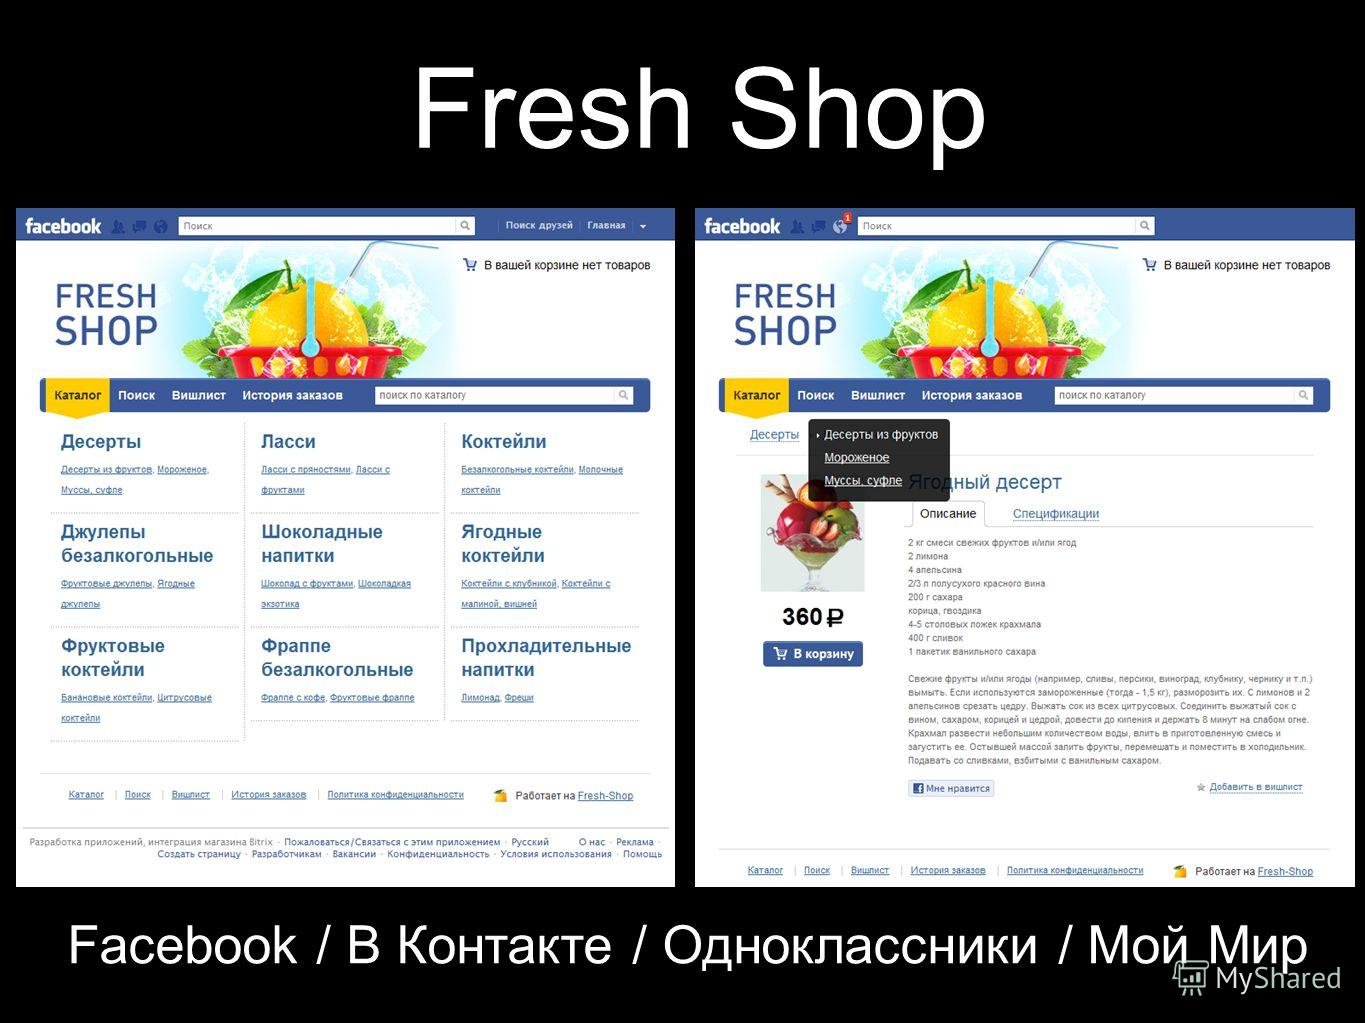 Fresh Shop Facebook / В Контакте / Одноклассники / Мой Мир